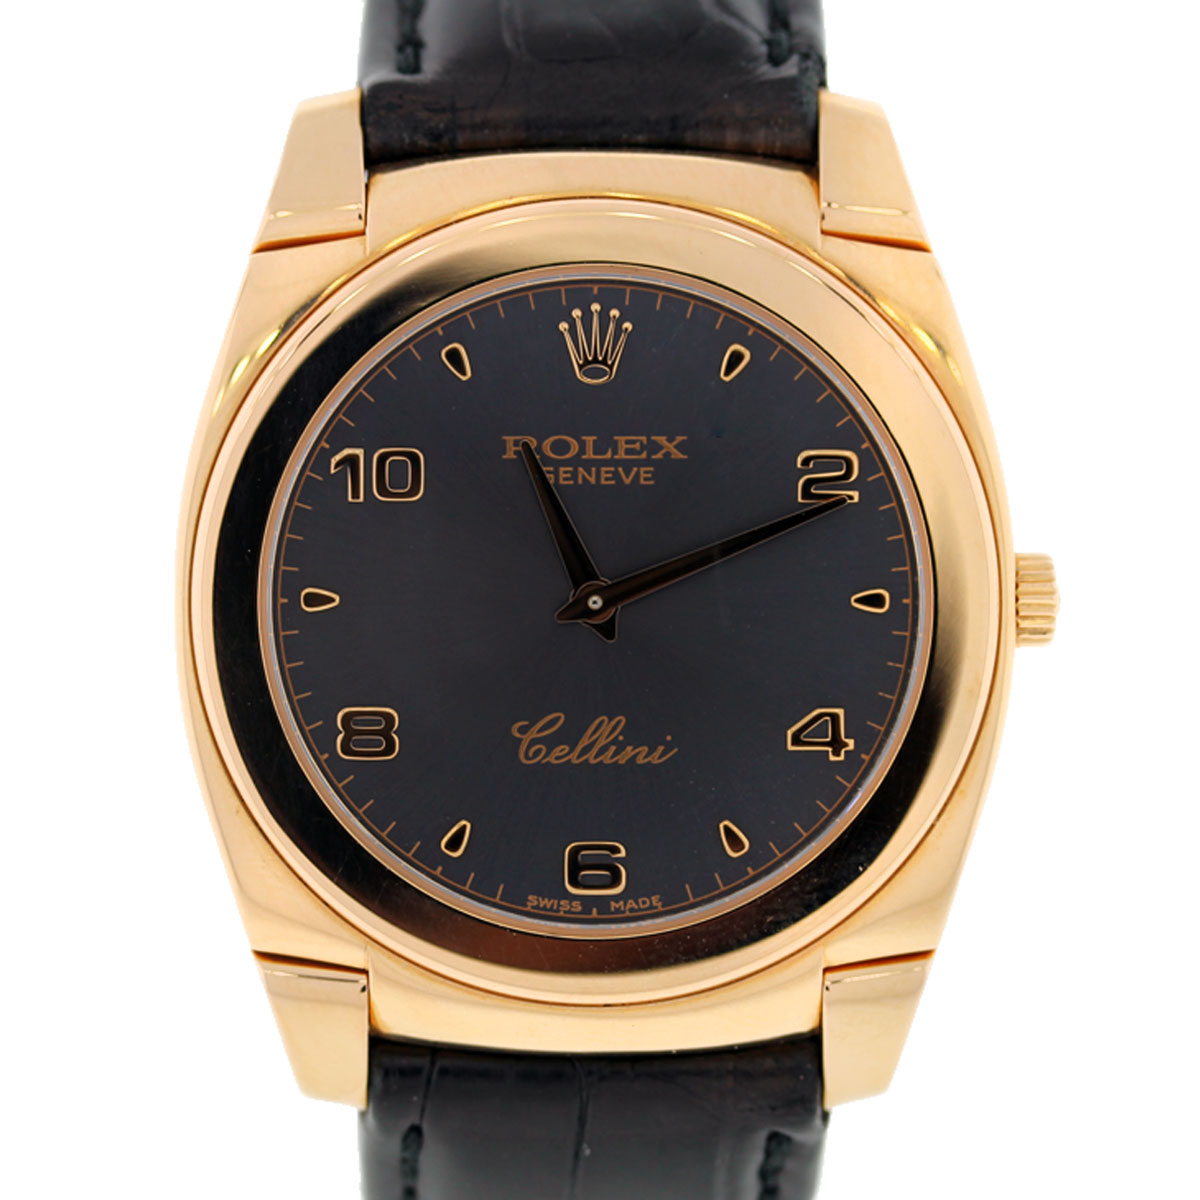 Rolex cellini 18k rose gold 5330 mens wristwatch boca raton for Rolex cellini